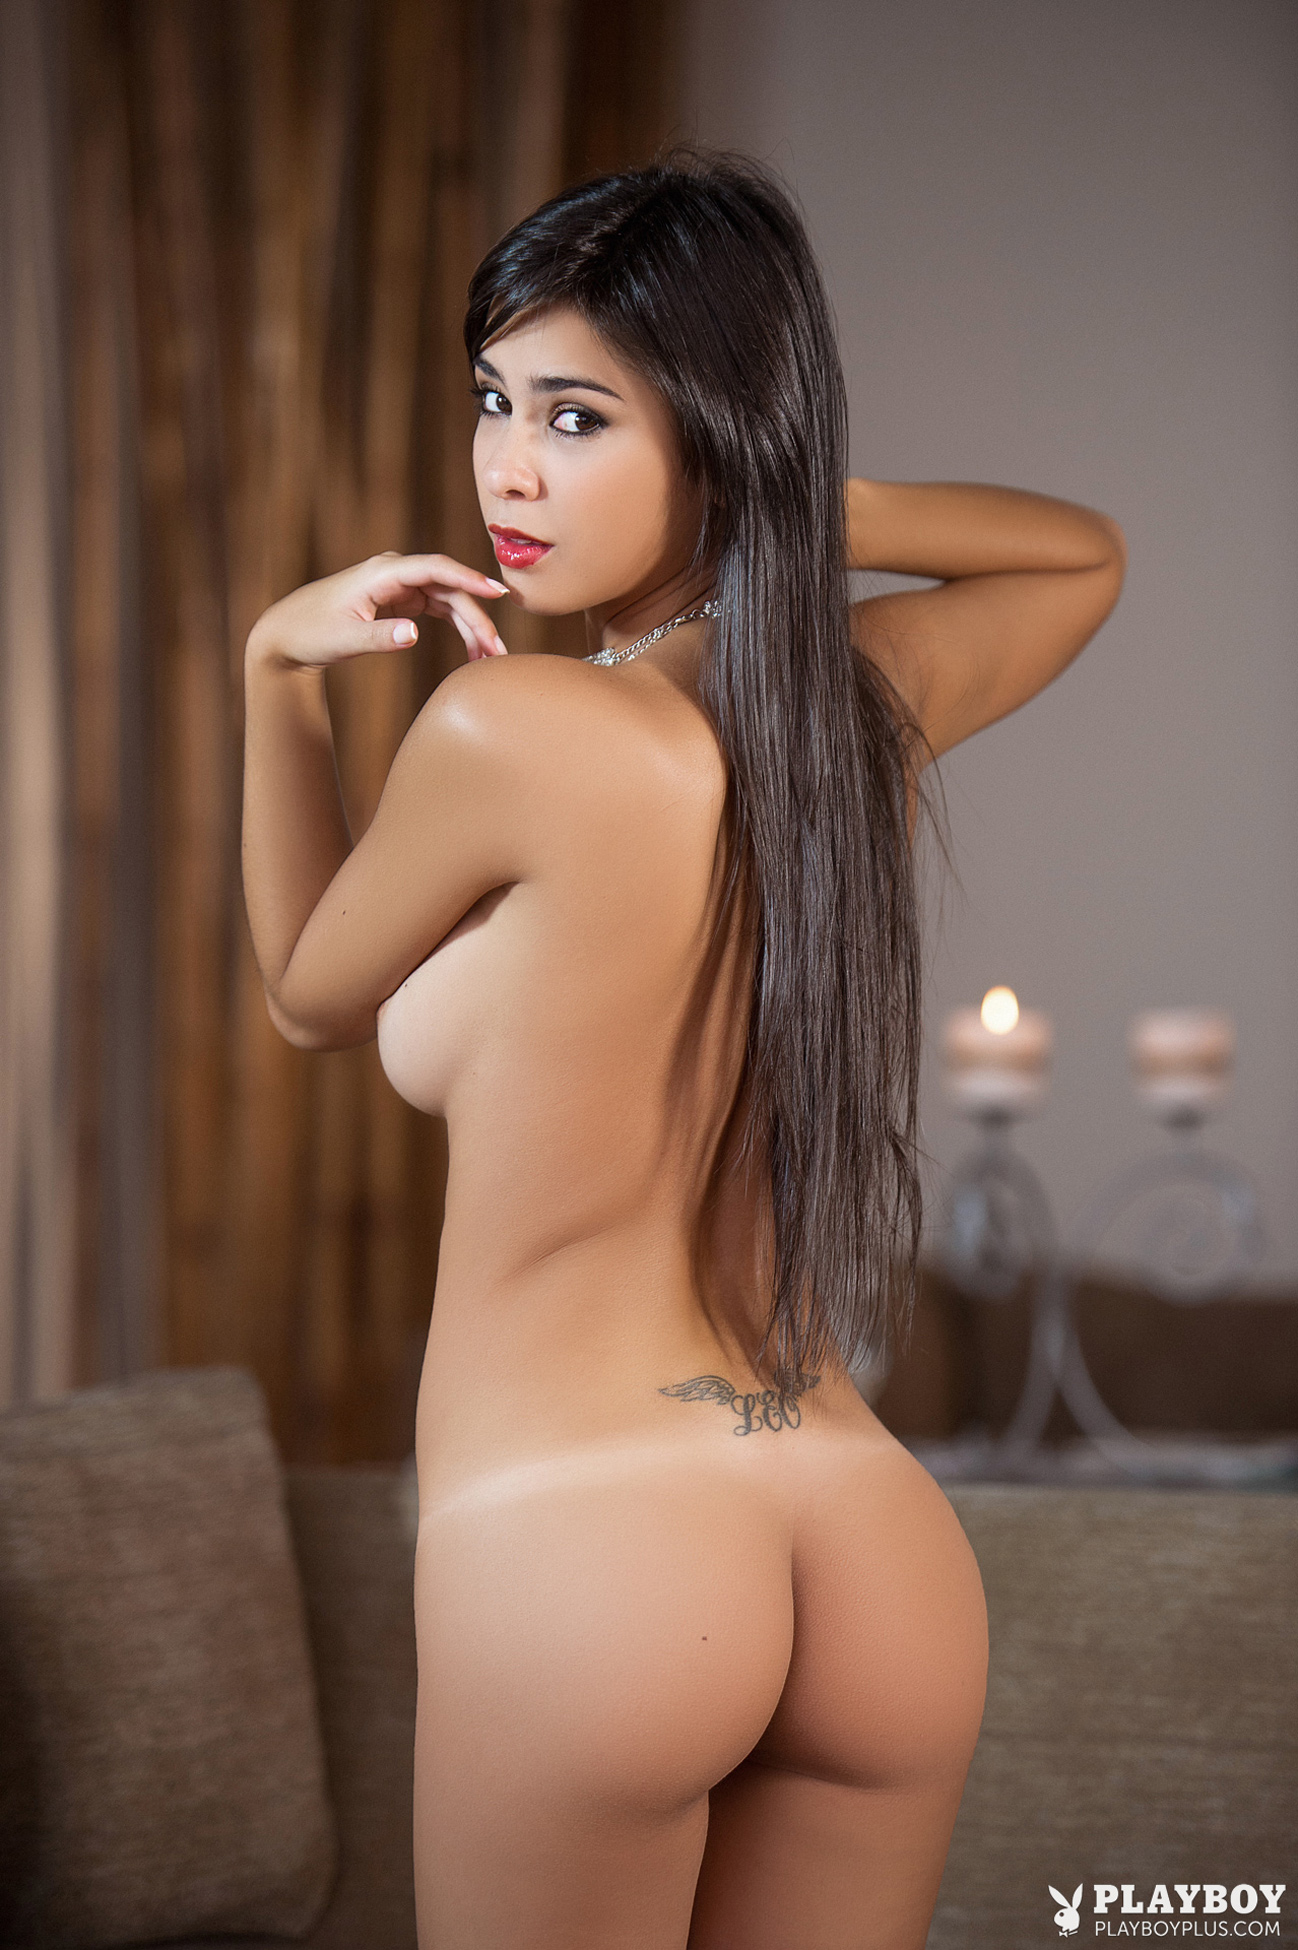 Free Nude Latina Photos